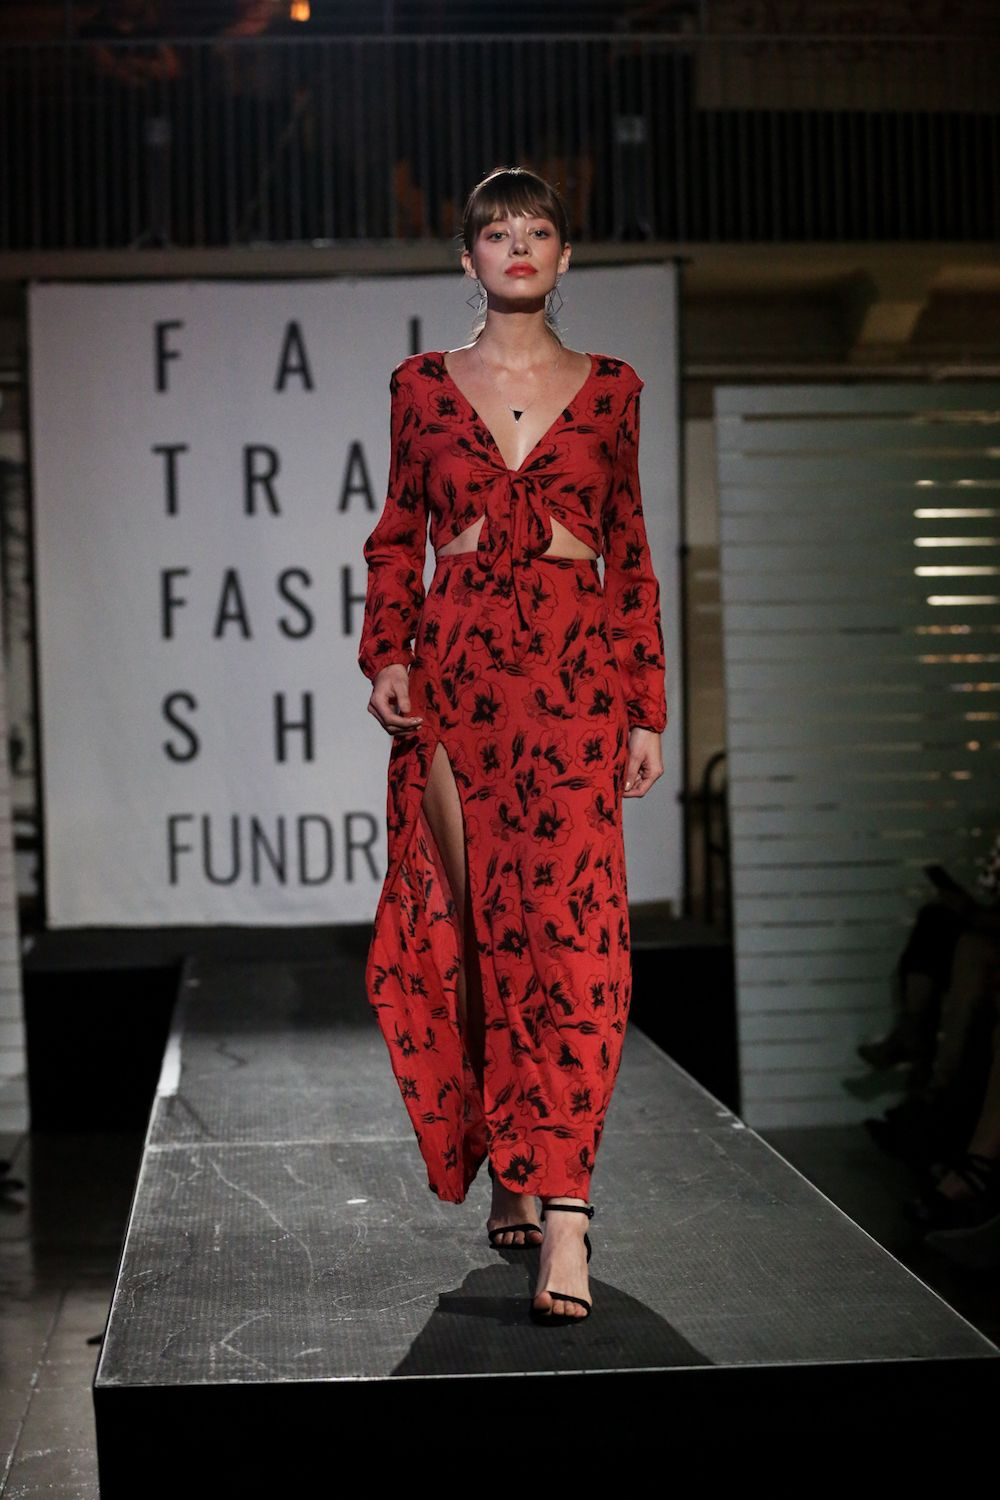 Fair trade fashion show 95